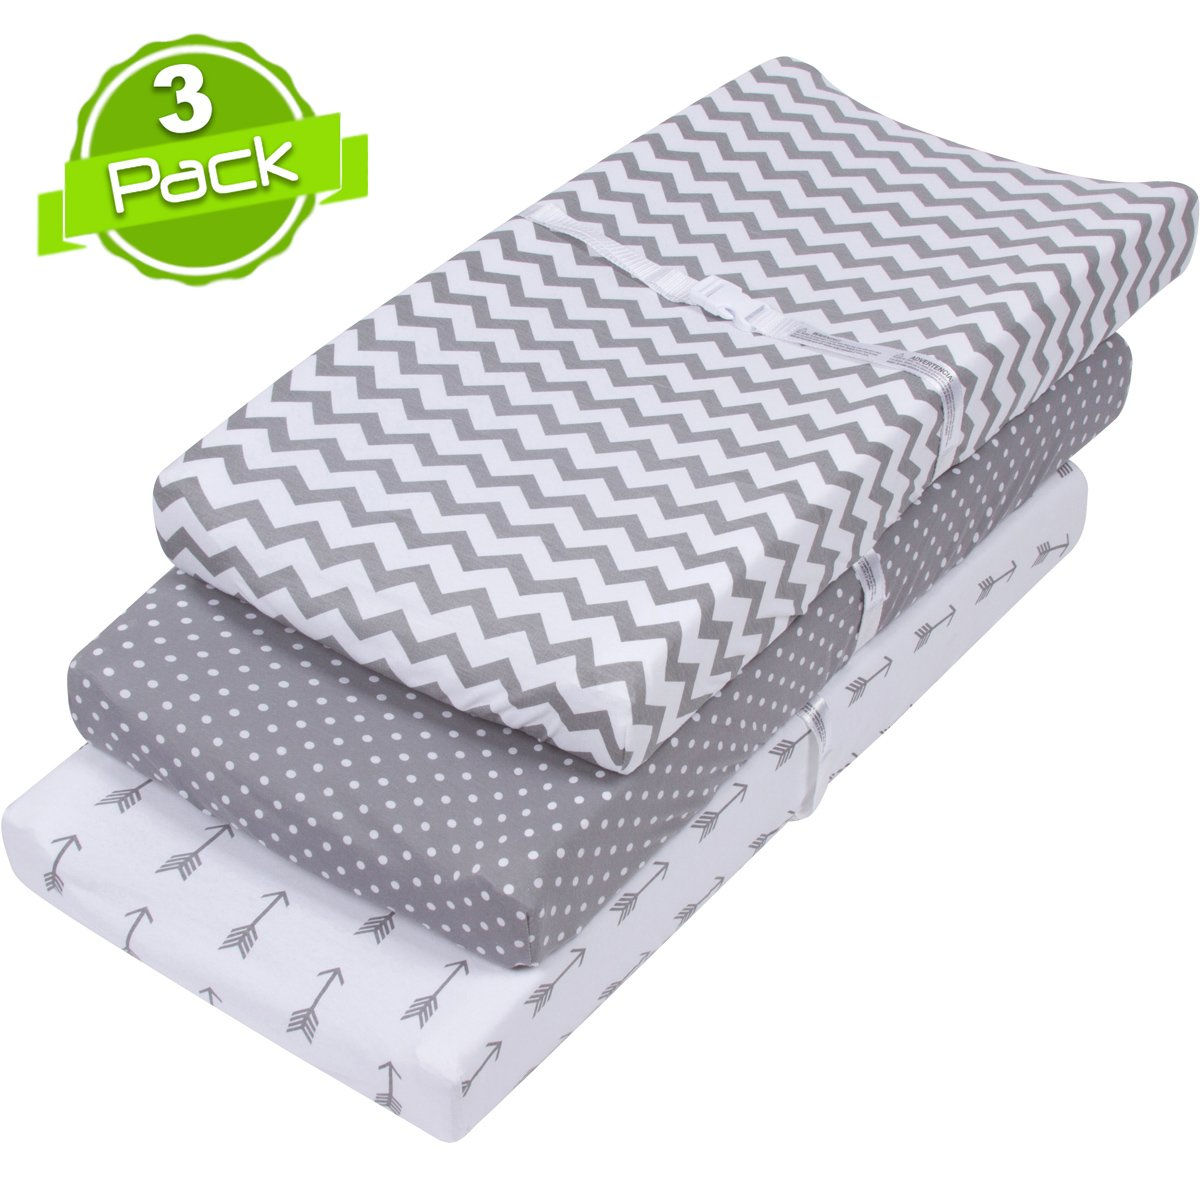 BaeBae Goods 150 GSM Soft Jersey Knit Cotton Changing Pad Cover Set, Grey and White, 3 Pack BaeBae & Company